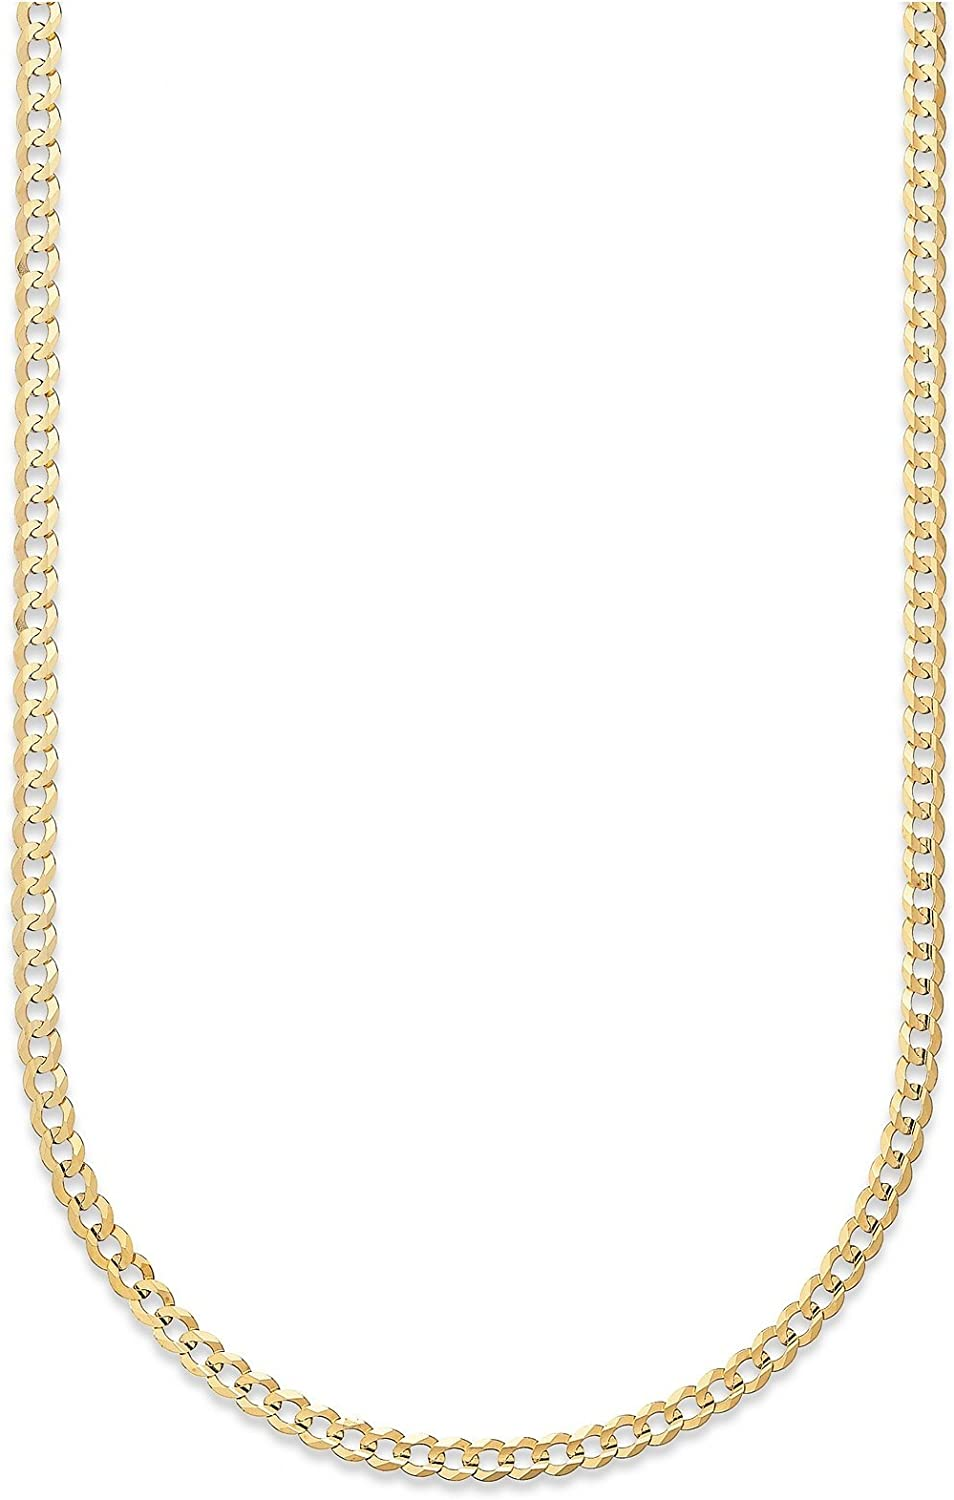 14K Gold 2.5MM, 3.5MM, 4MM, 5MM, 6.5MM, 7.5MM, 9MM Cuban/Curb Chain Necklace and Bracelet - Made In Italy - Yellow, White, Rose, Two Tone